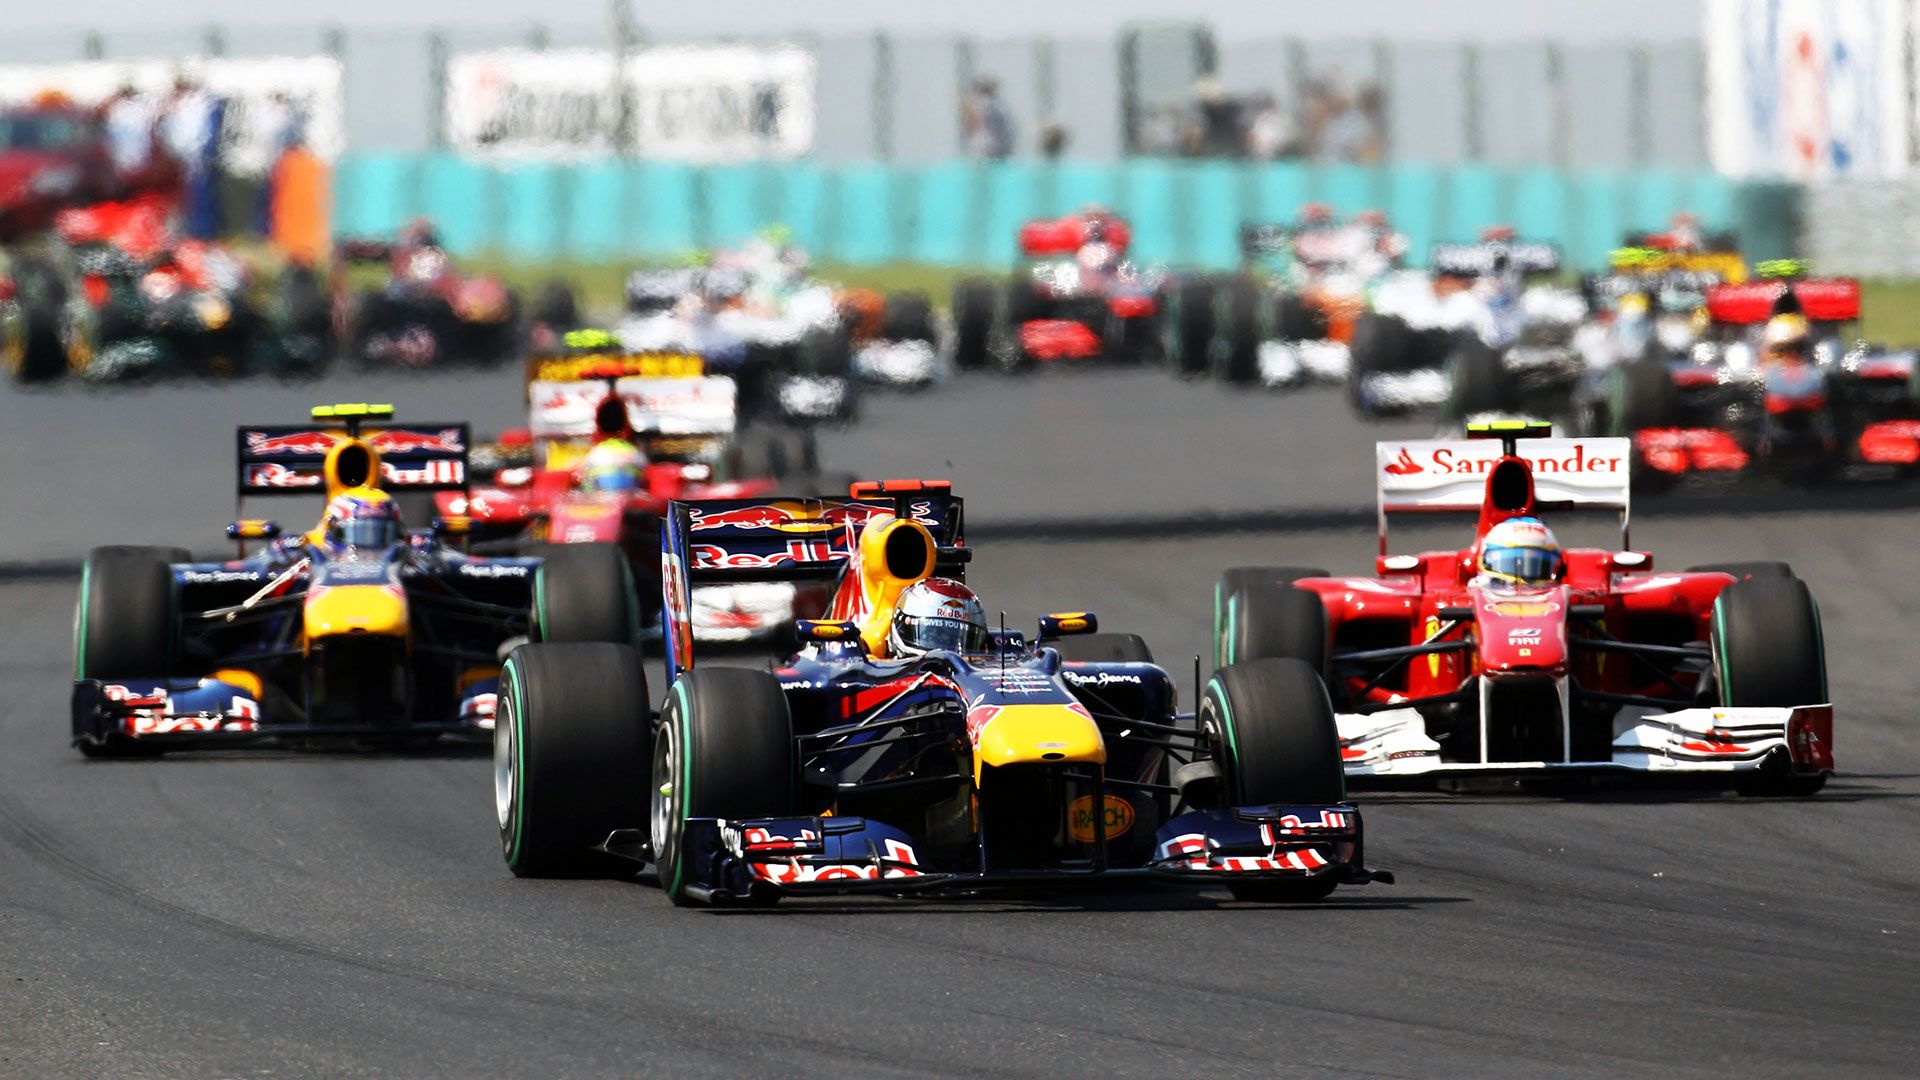 hd wallpapers 2010 formula 1 grand prix of hungary | f1-fansite